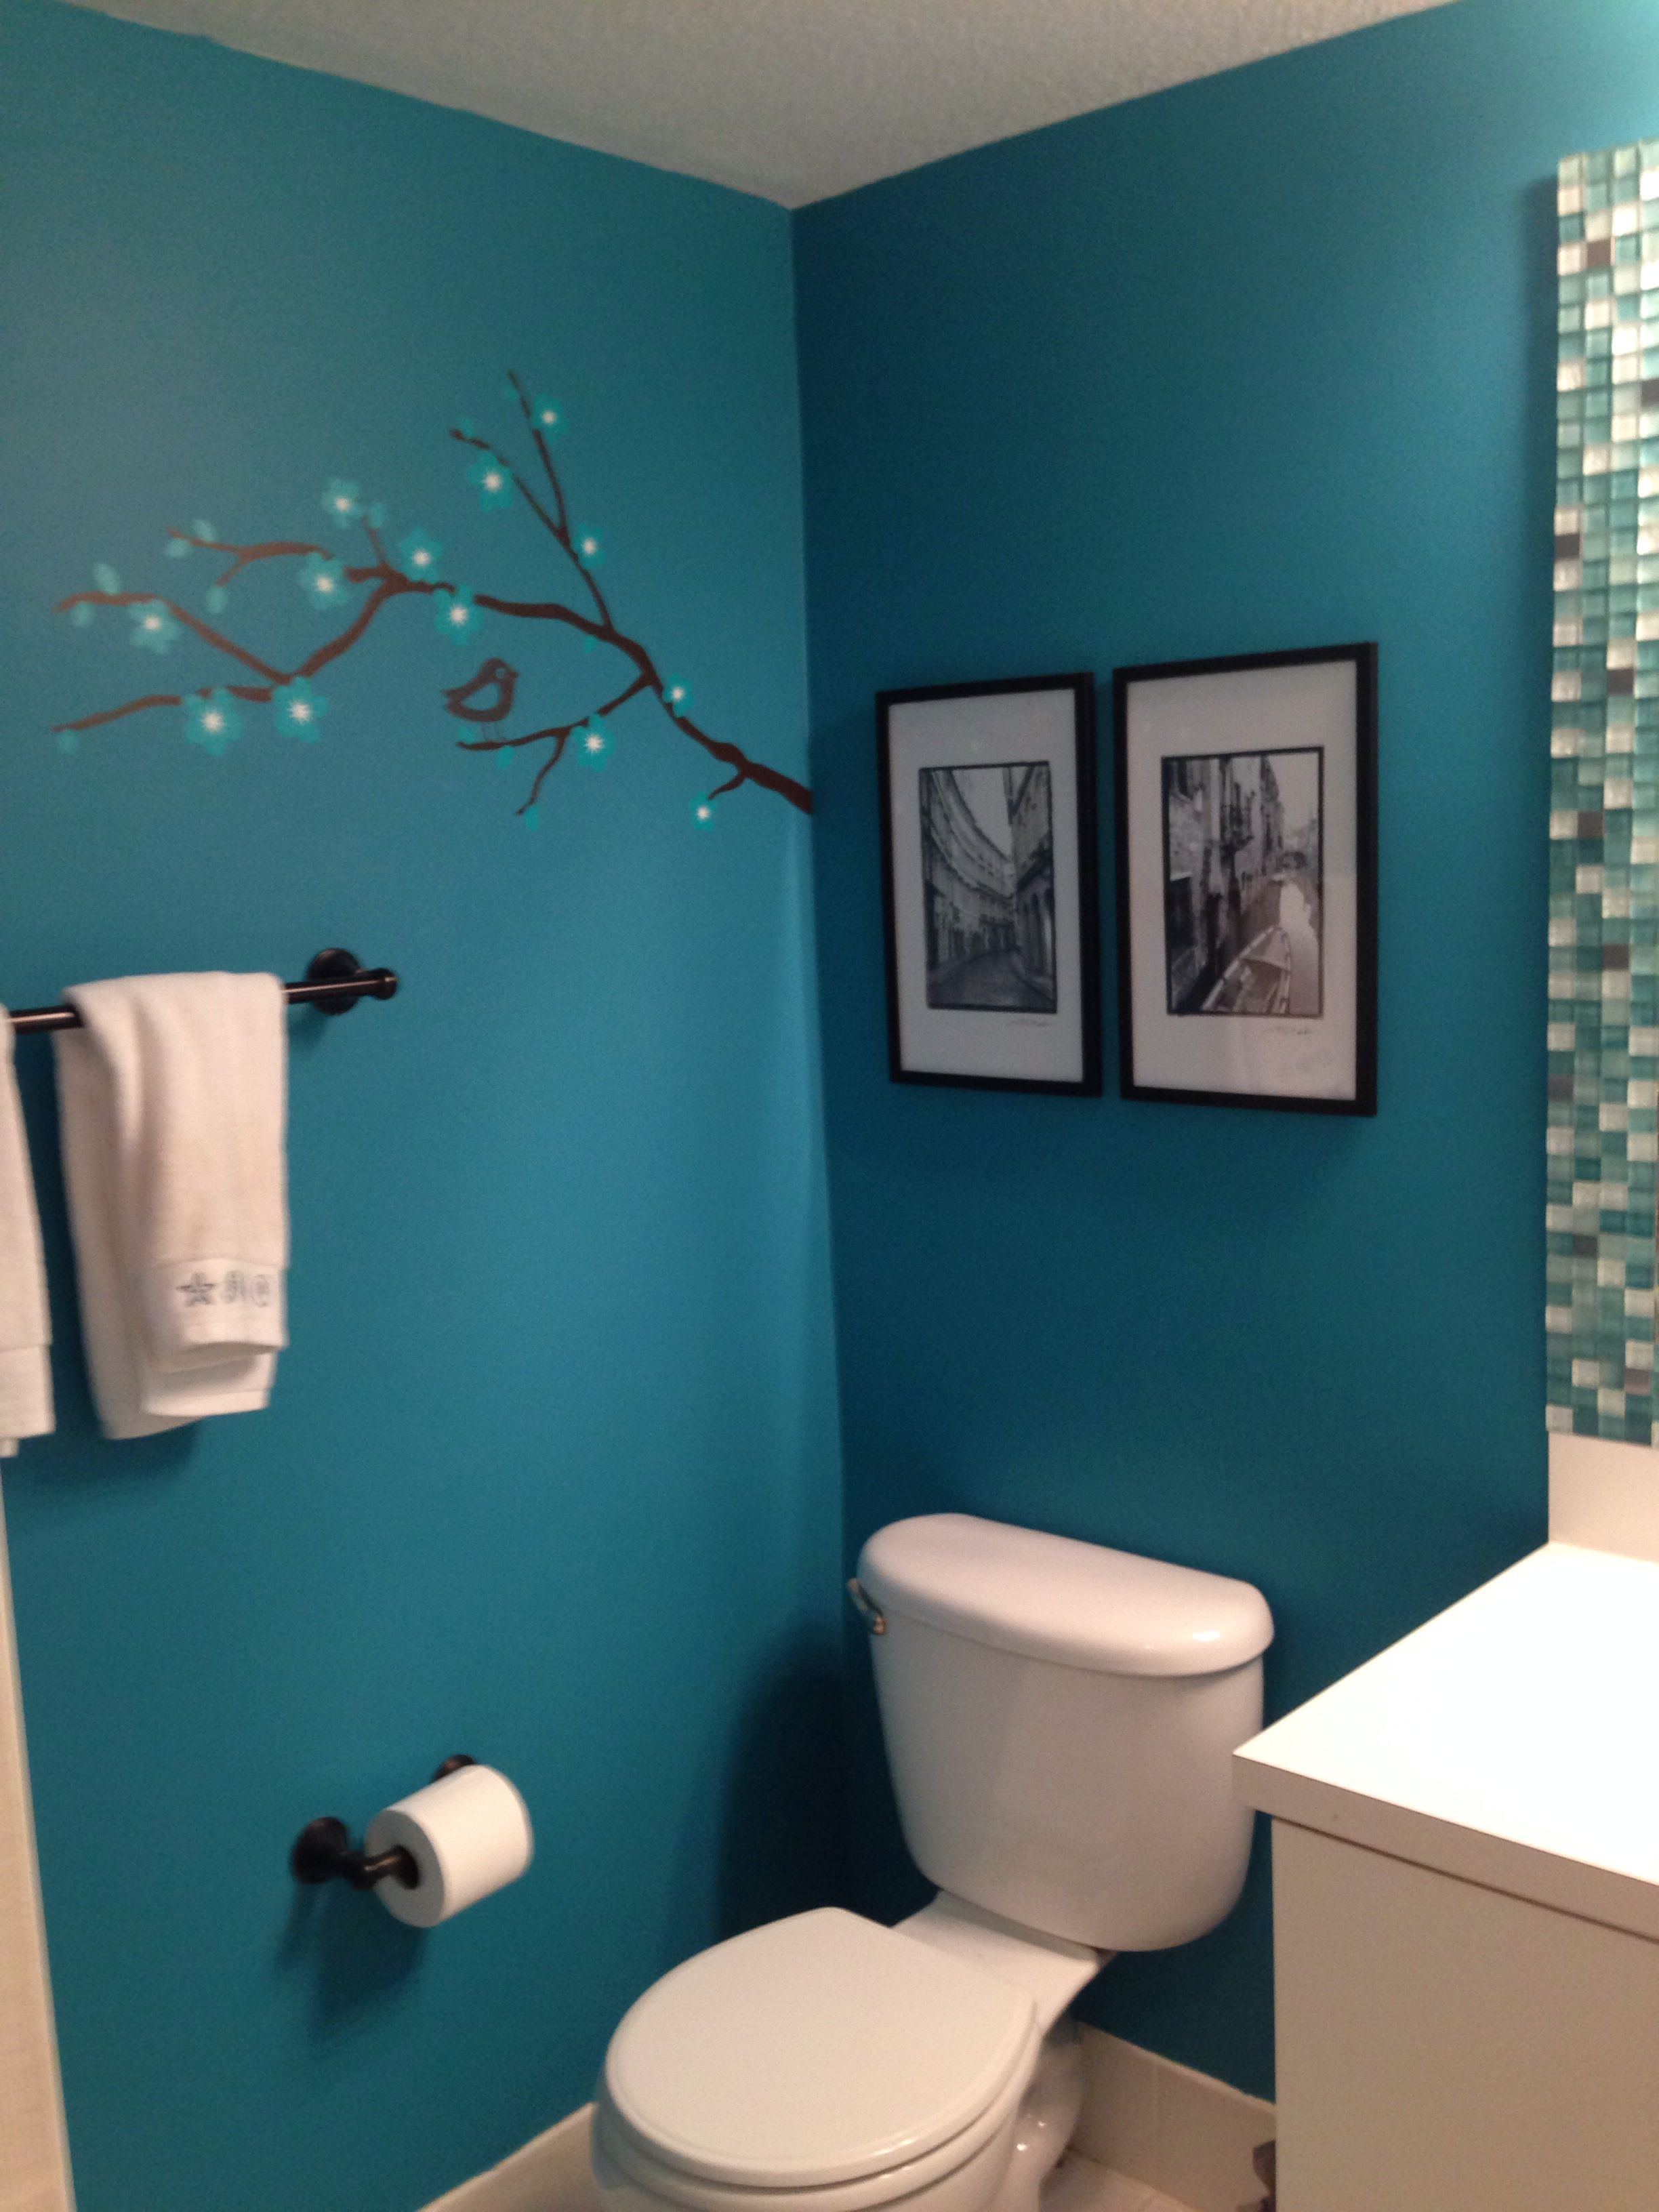 Teal bathroom bathroom pinterest teal black and house for Teal and black bathroom accessories